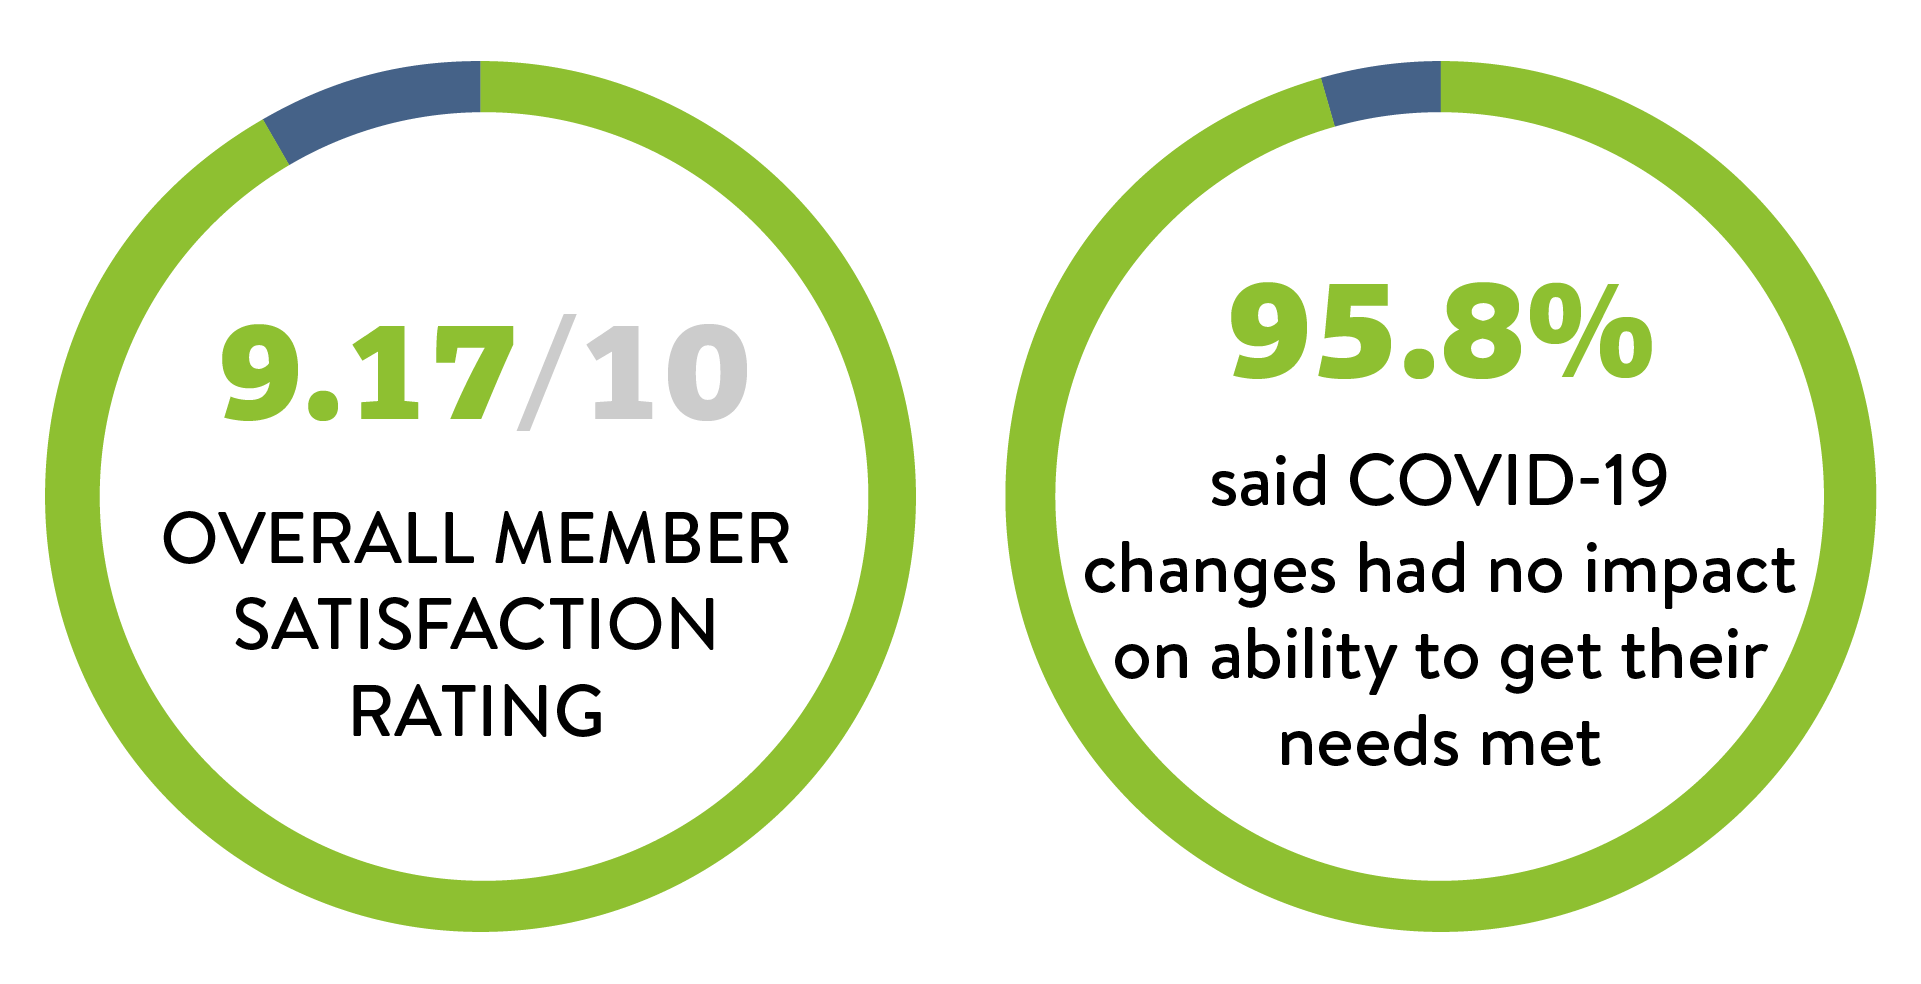 9.17/10 Overall Member Satisfaction Rating, 95.8% said COVID-19 changes had no impact on ability to get their needs met.